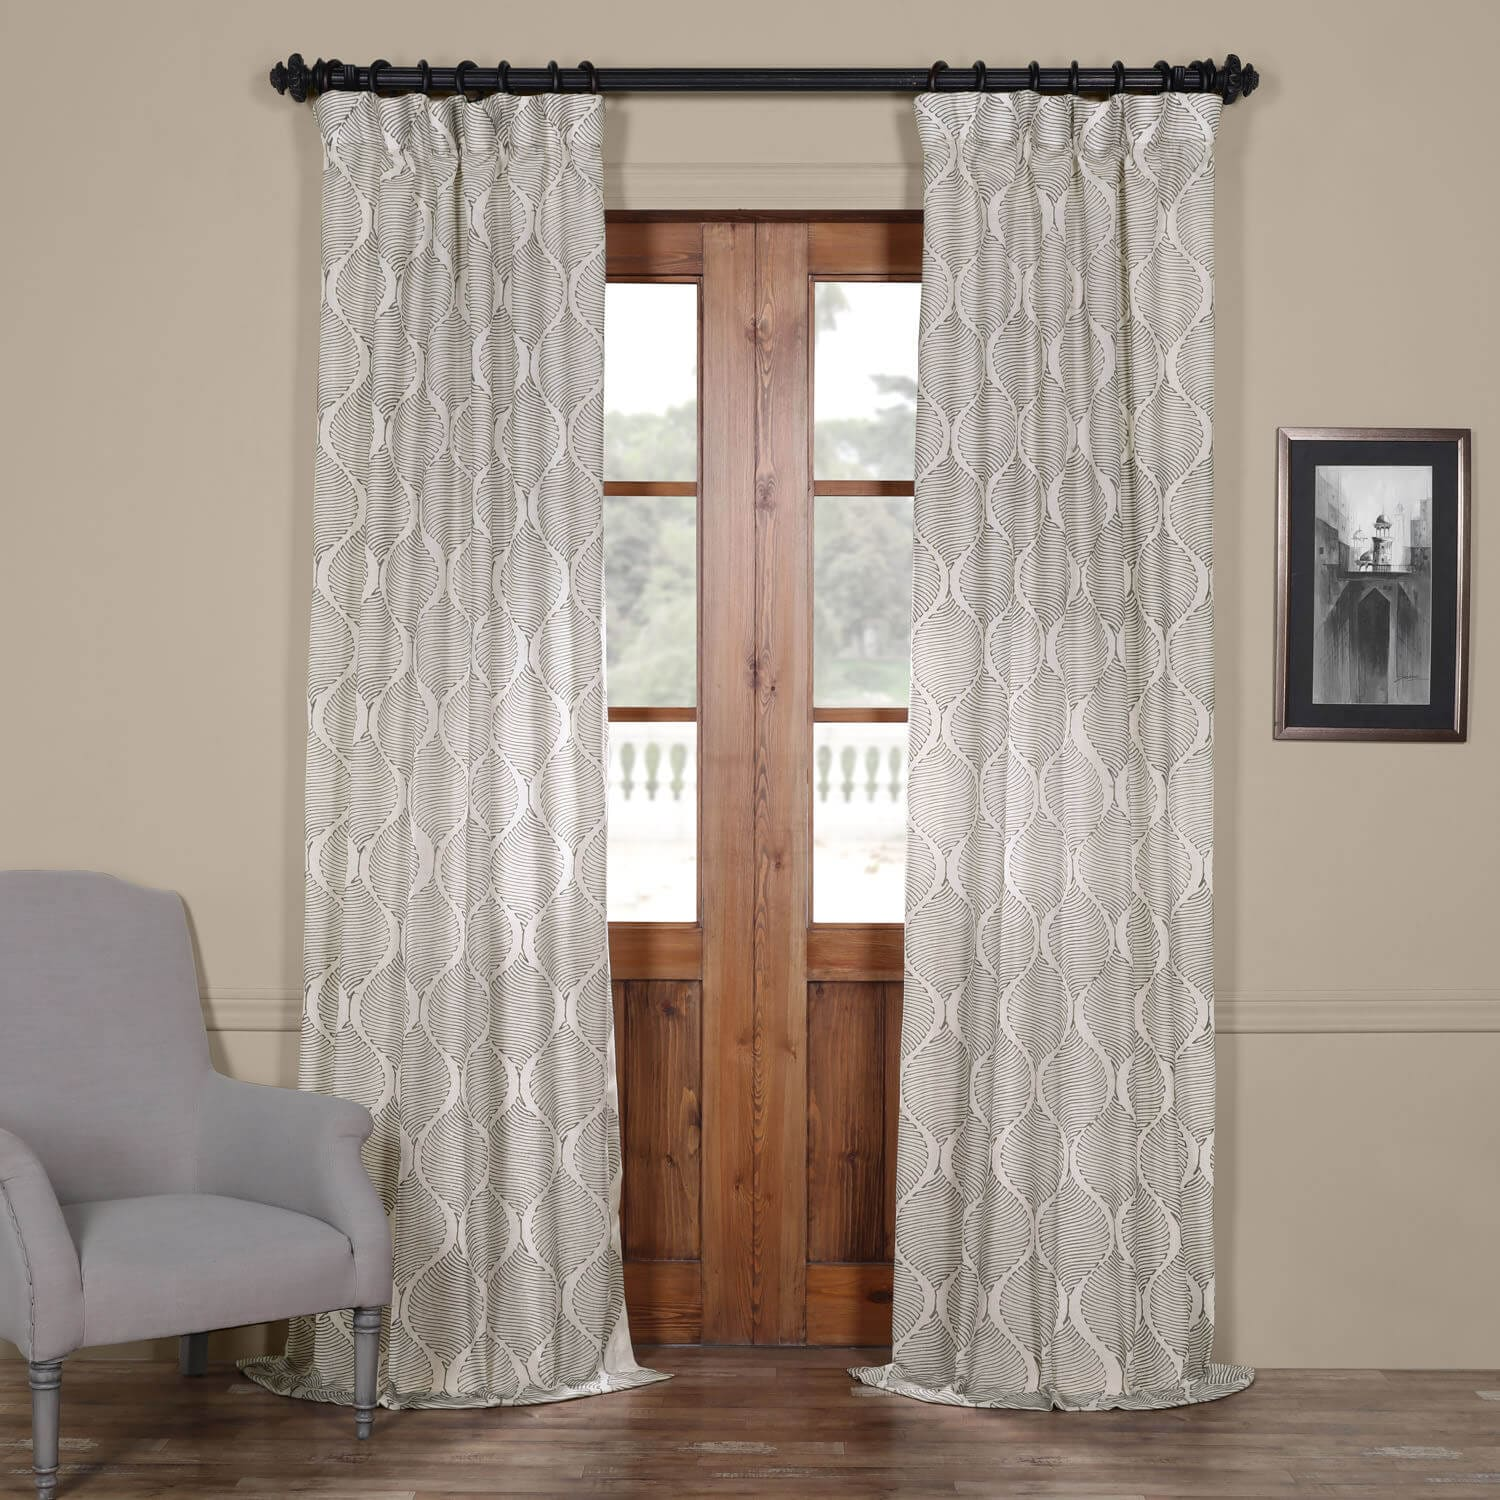 Dreamweaver Silver Taupe Embroidered Faux Linen Curtain